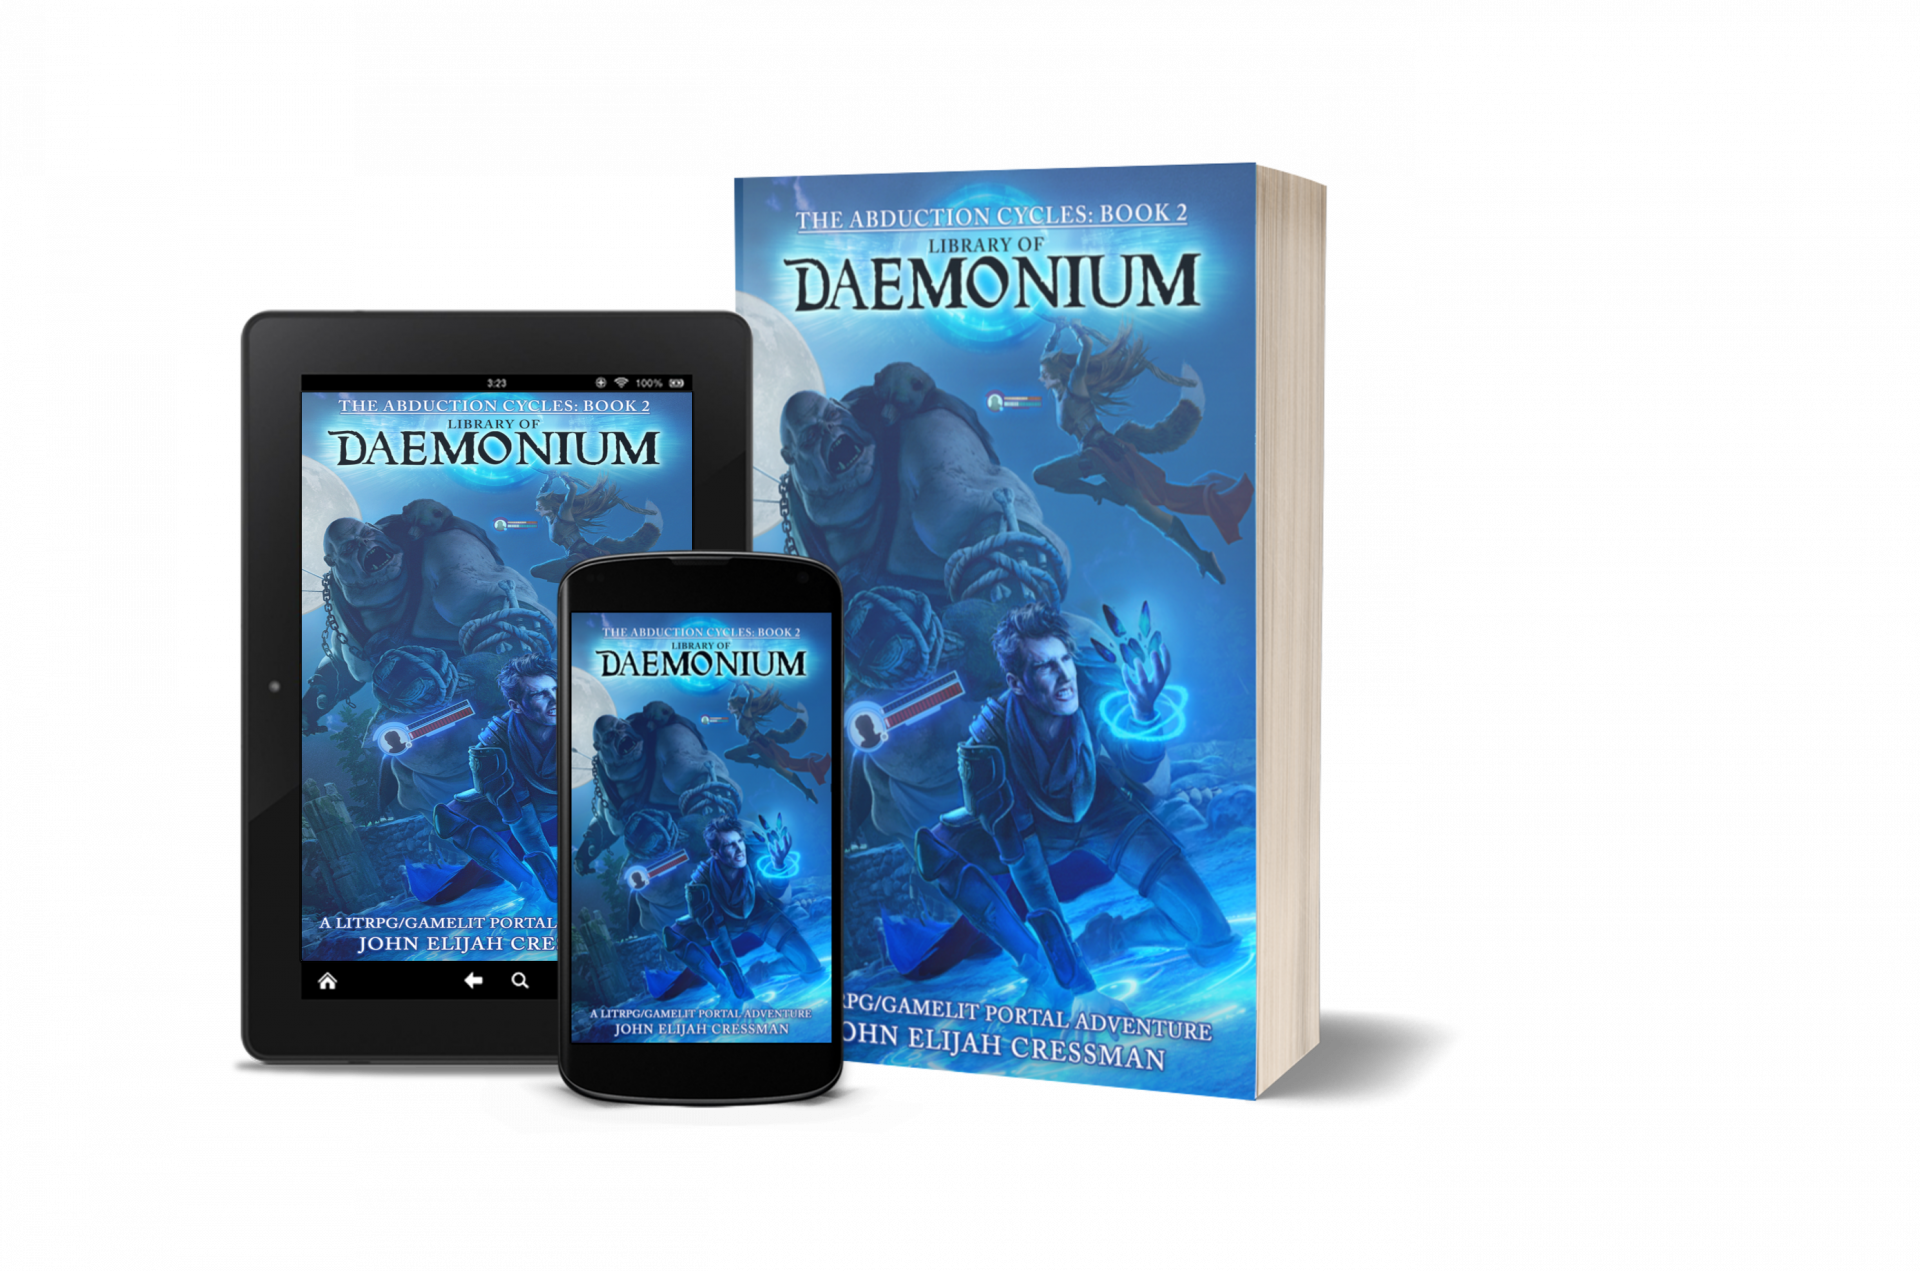 Abduction Cycles: Library of Daemonium Summary